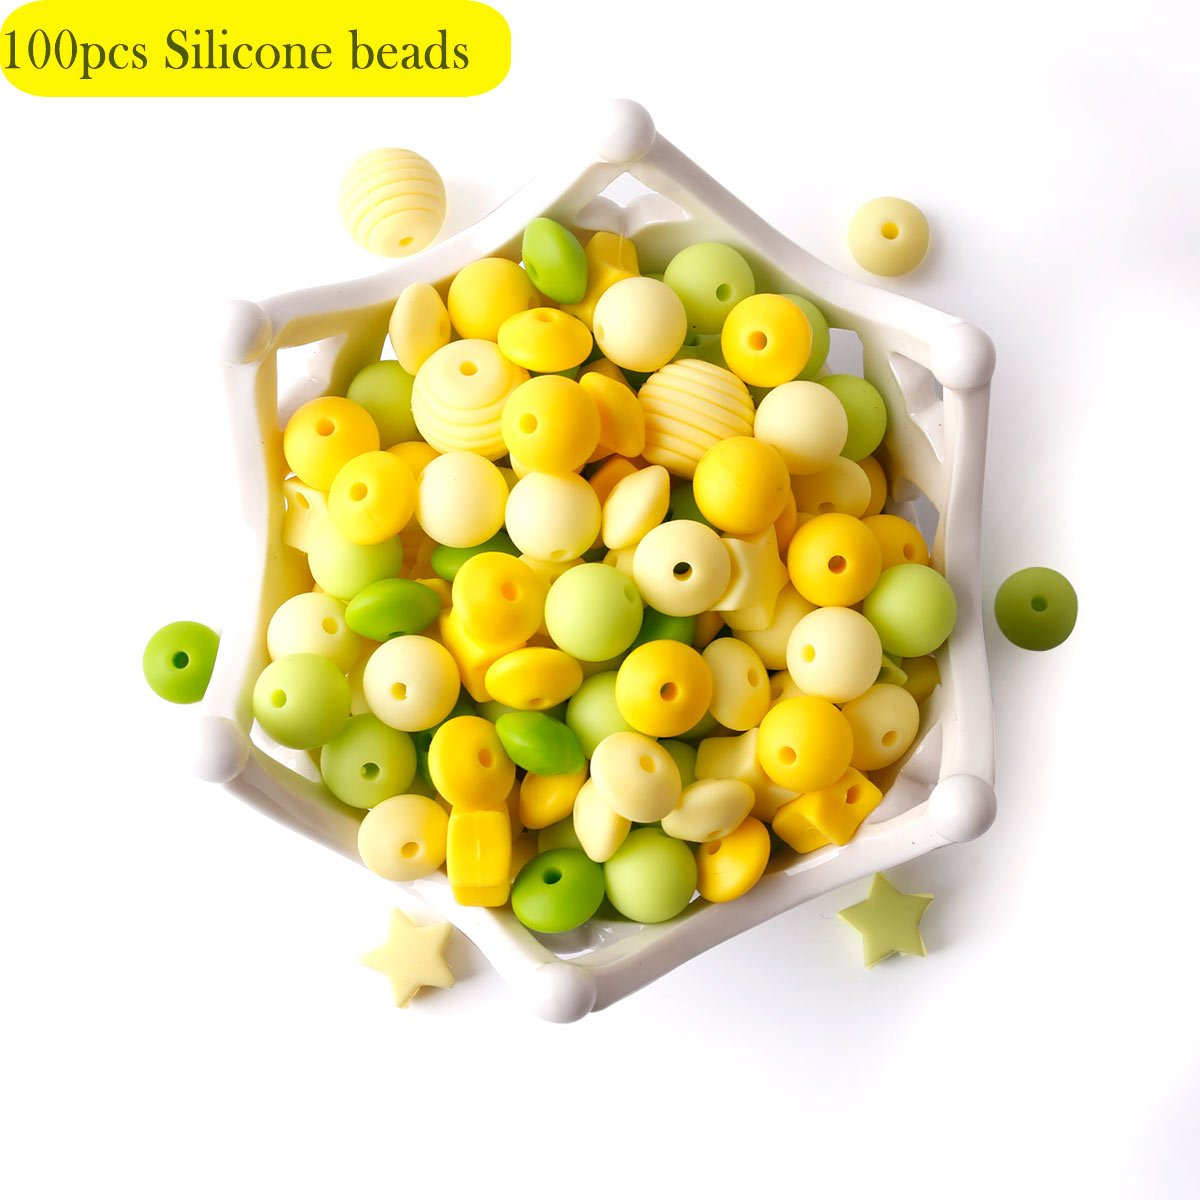 Baby Silicone Teether Beads 100pcs BPA Free Food Grade Teething Beads Purple Series DIY Jewelry Chewable Nursing Necklace Accessories HAO JIE